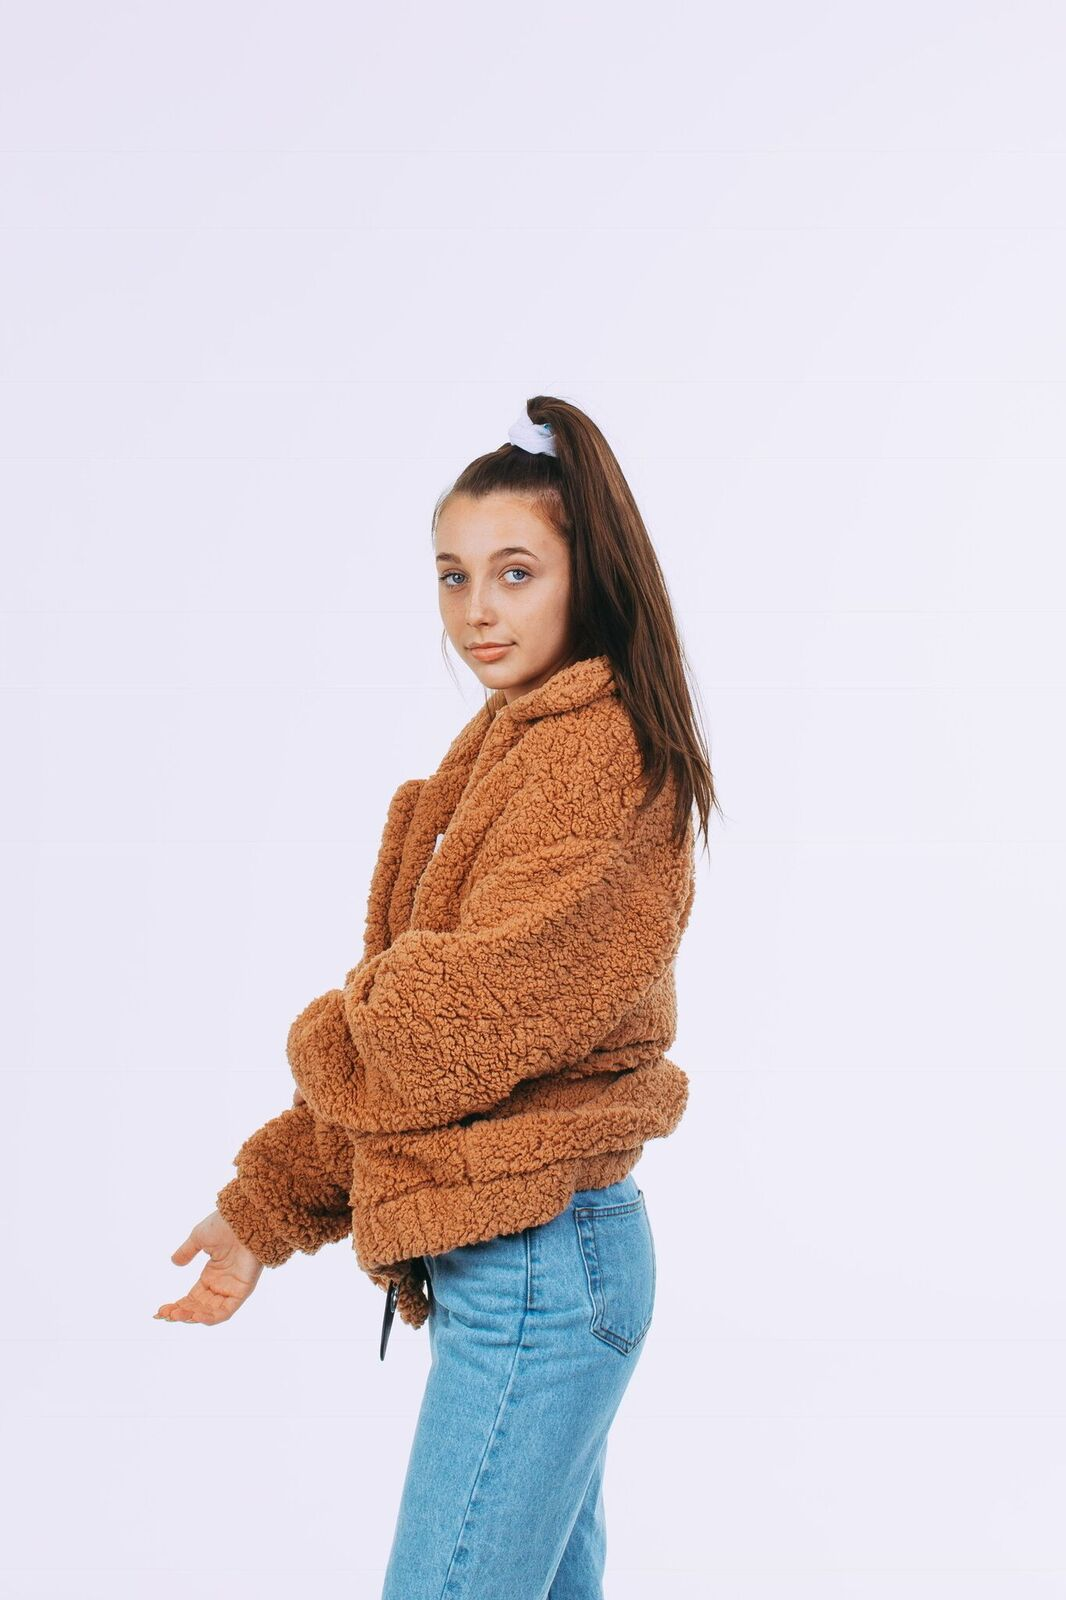 Emma Chamberlain Wallpapers.